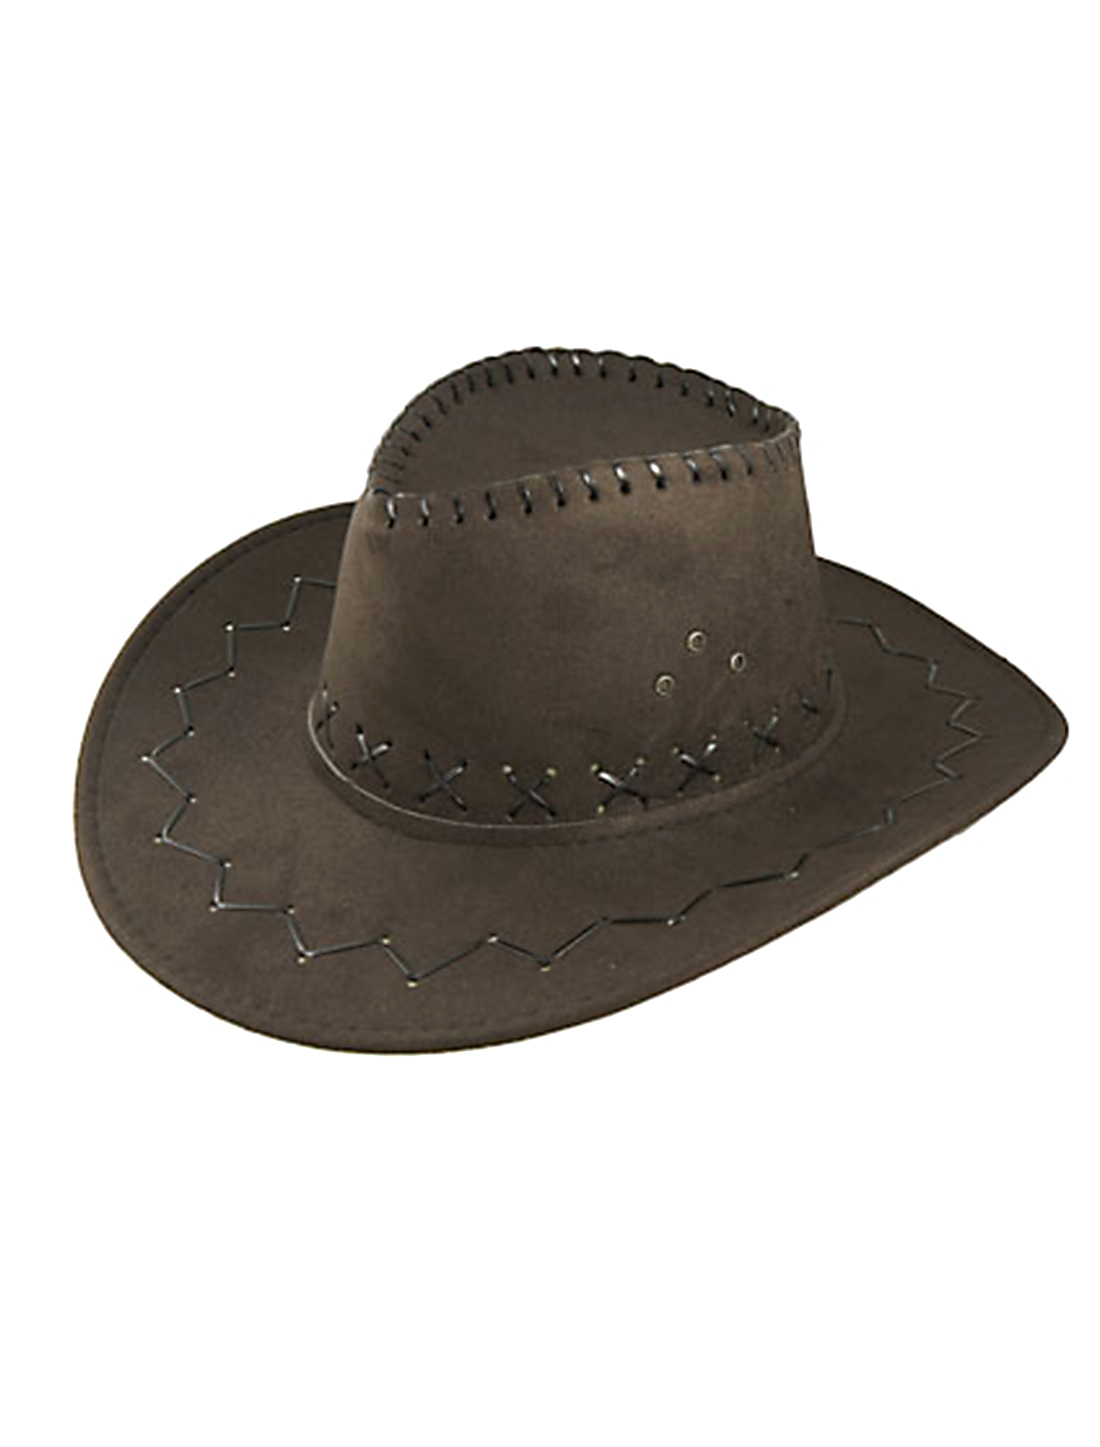 Faux Suede Multi-eyelets Adjustable Strap Cowboy Hat for Men